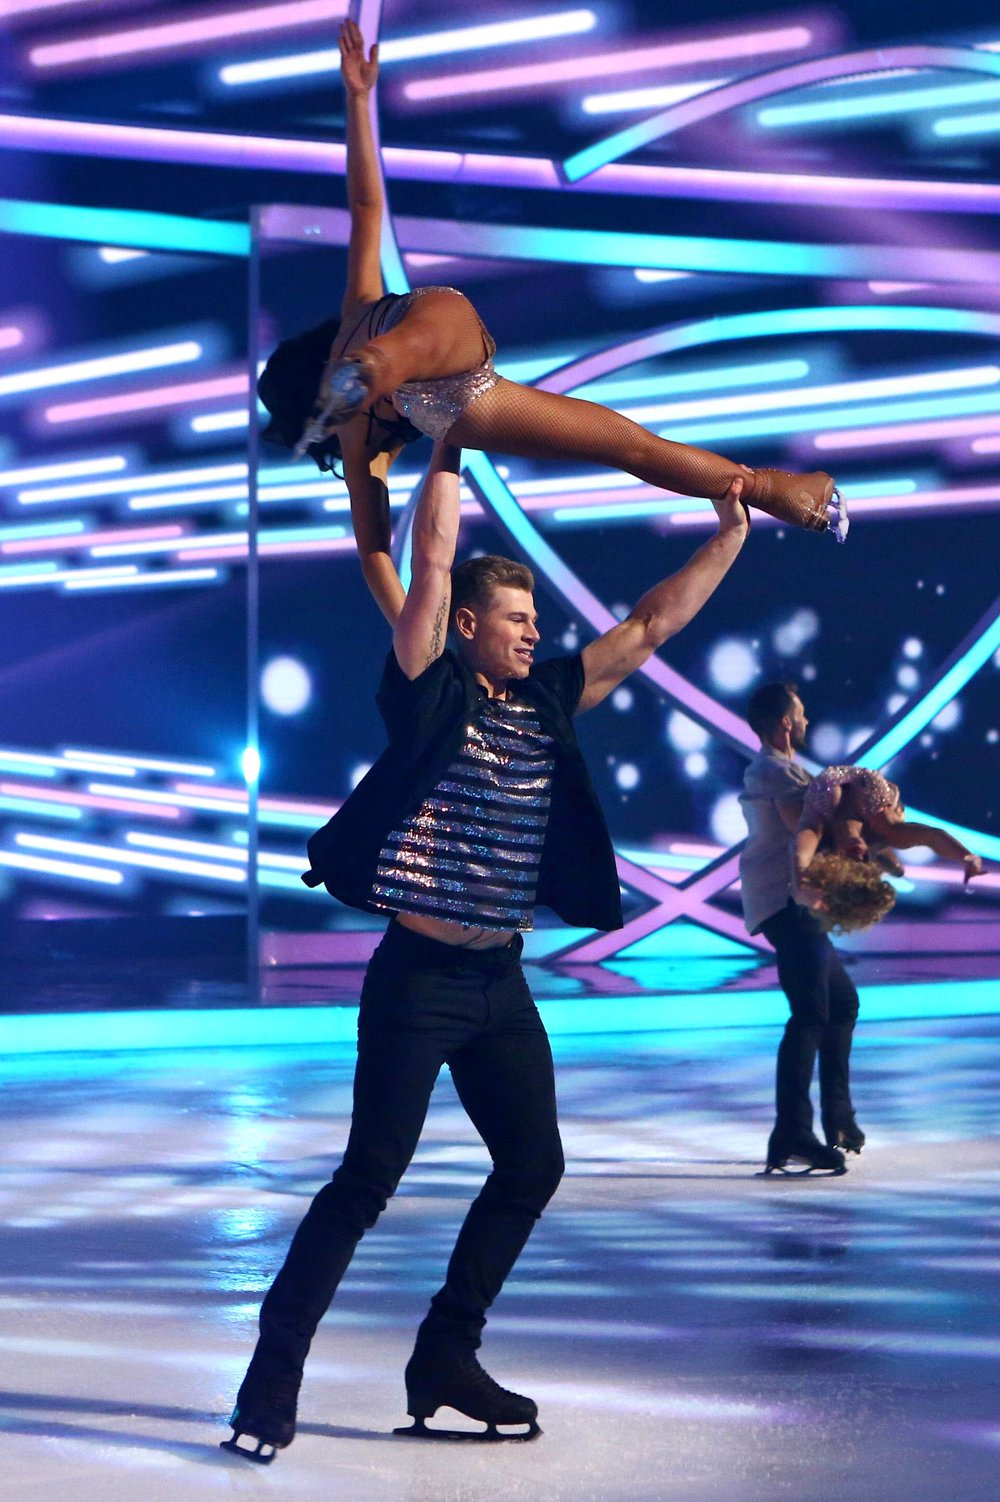 Vanessa and Hamish perform together on Dancing On Ice.